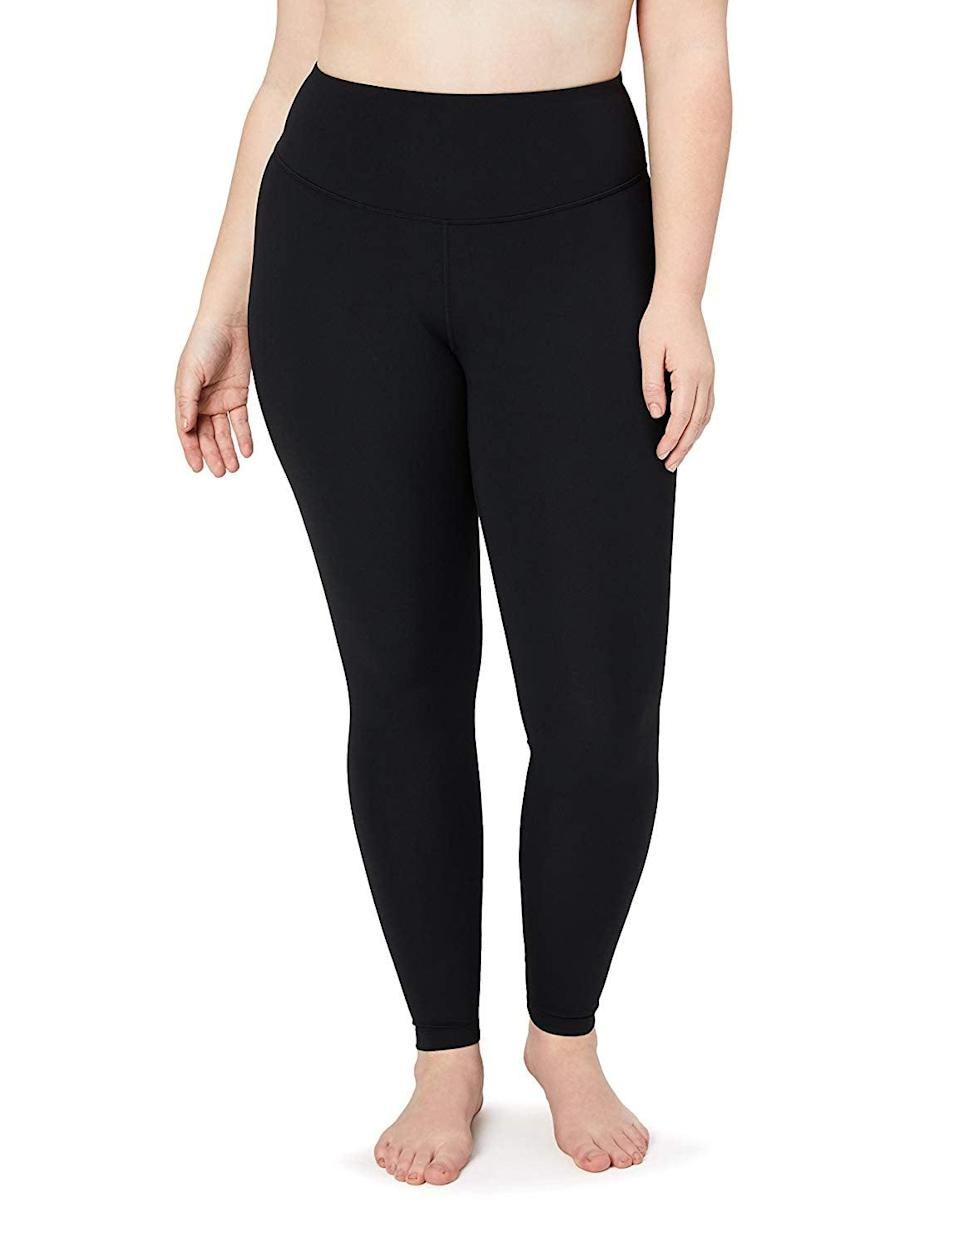 """<p>One woman said of the <a href=""""https://www.popsugar.com/buy/Core-10-Women-Spectrum-Yoga-High-Waist-Full-Length-Legging-365706?p_name=Core%2010%20Women%27s%20Spectrum%20Yoga%20High%20Waist%20Full-Length%20Legging&retailer=amazon.com&pid=365706&price=39&evar1=fit%3Aus&evar9=45278643&evar98=https%3A%2F%2Fwww.popsugar.com%2Ffitness%2Fphoto-gallery%2F45278643%2Fimage%2F45278654%2FCore-10-Women-Spectrum-Yoga-High-Waist-Full-Length-Legging&list1=shopping%2Camazon%2Cworkout%20clothes%2Cleggings%2Cfitness%20gear&prop13=mobile&pdata=1"""" class=""""link rapid-noclick-resp"""" rel=""""nofollow noopener"""" target=""""_blank"""" data-ylk=""""slk:Core 10 Women's Spectrum Yoga High Waist Full-Length Legging"""">Core 10 Women's Spectrum Yoga High Waist Full-Length Legging</a> ($39), """"The only thing that I don't like about these leggings is that I have to take them off to shower and wash them.""""</p>"""